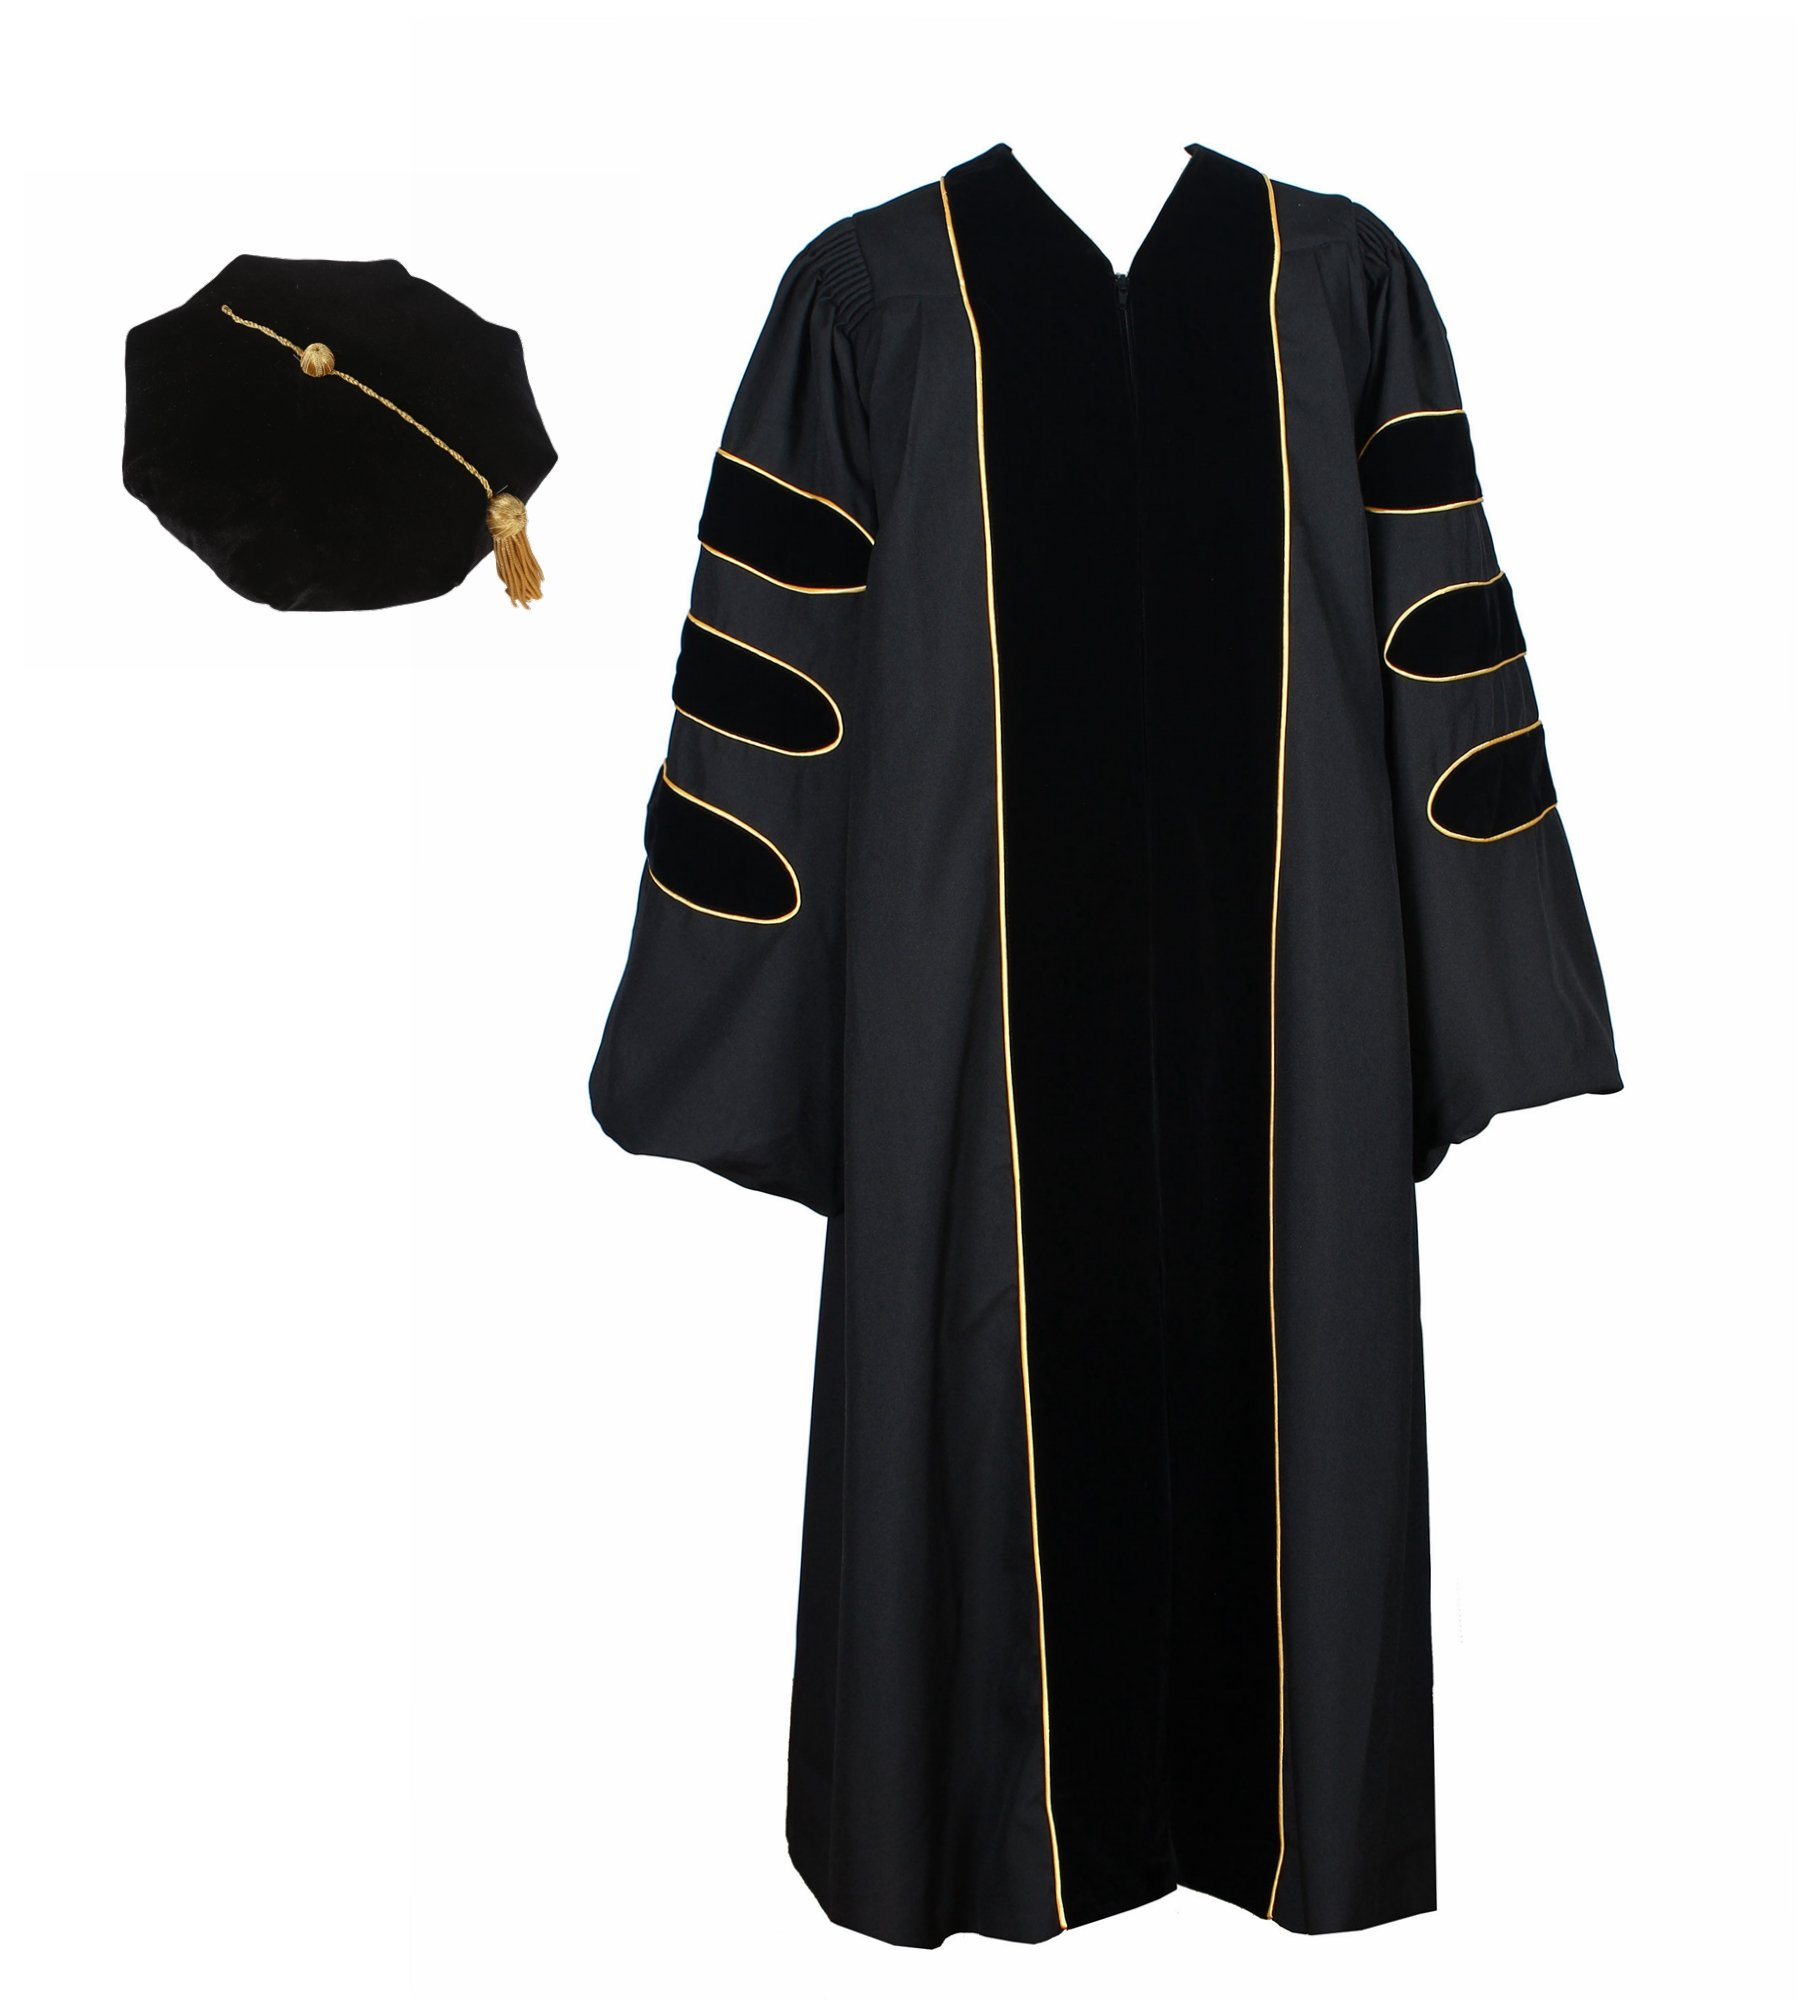 GraduationService Unisex Deluxe Doctoral Graduation Gown With Gold Piping and Bkack Doctoral Tam Package